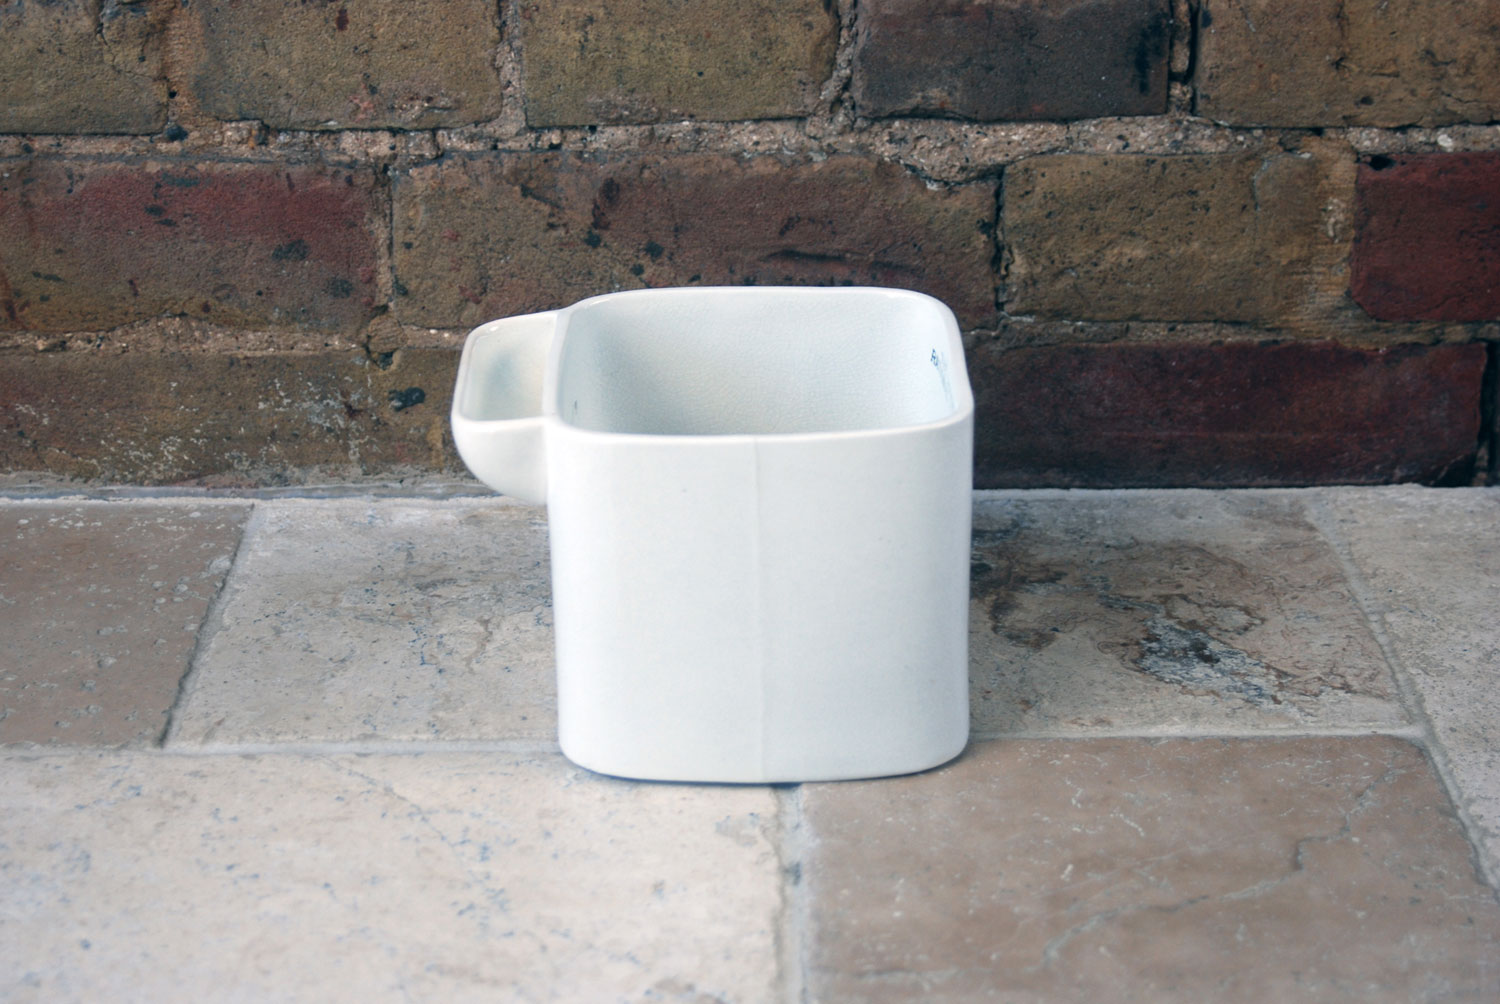 Victorian white ironstone granitine improved rational plate washer sink tidy bathroom storage